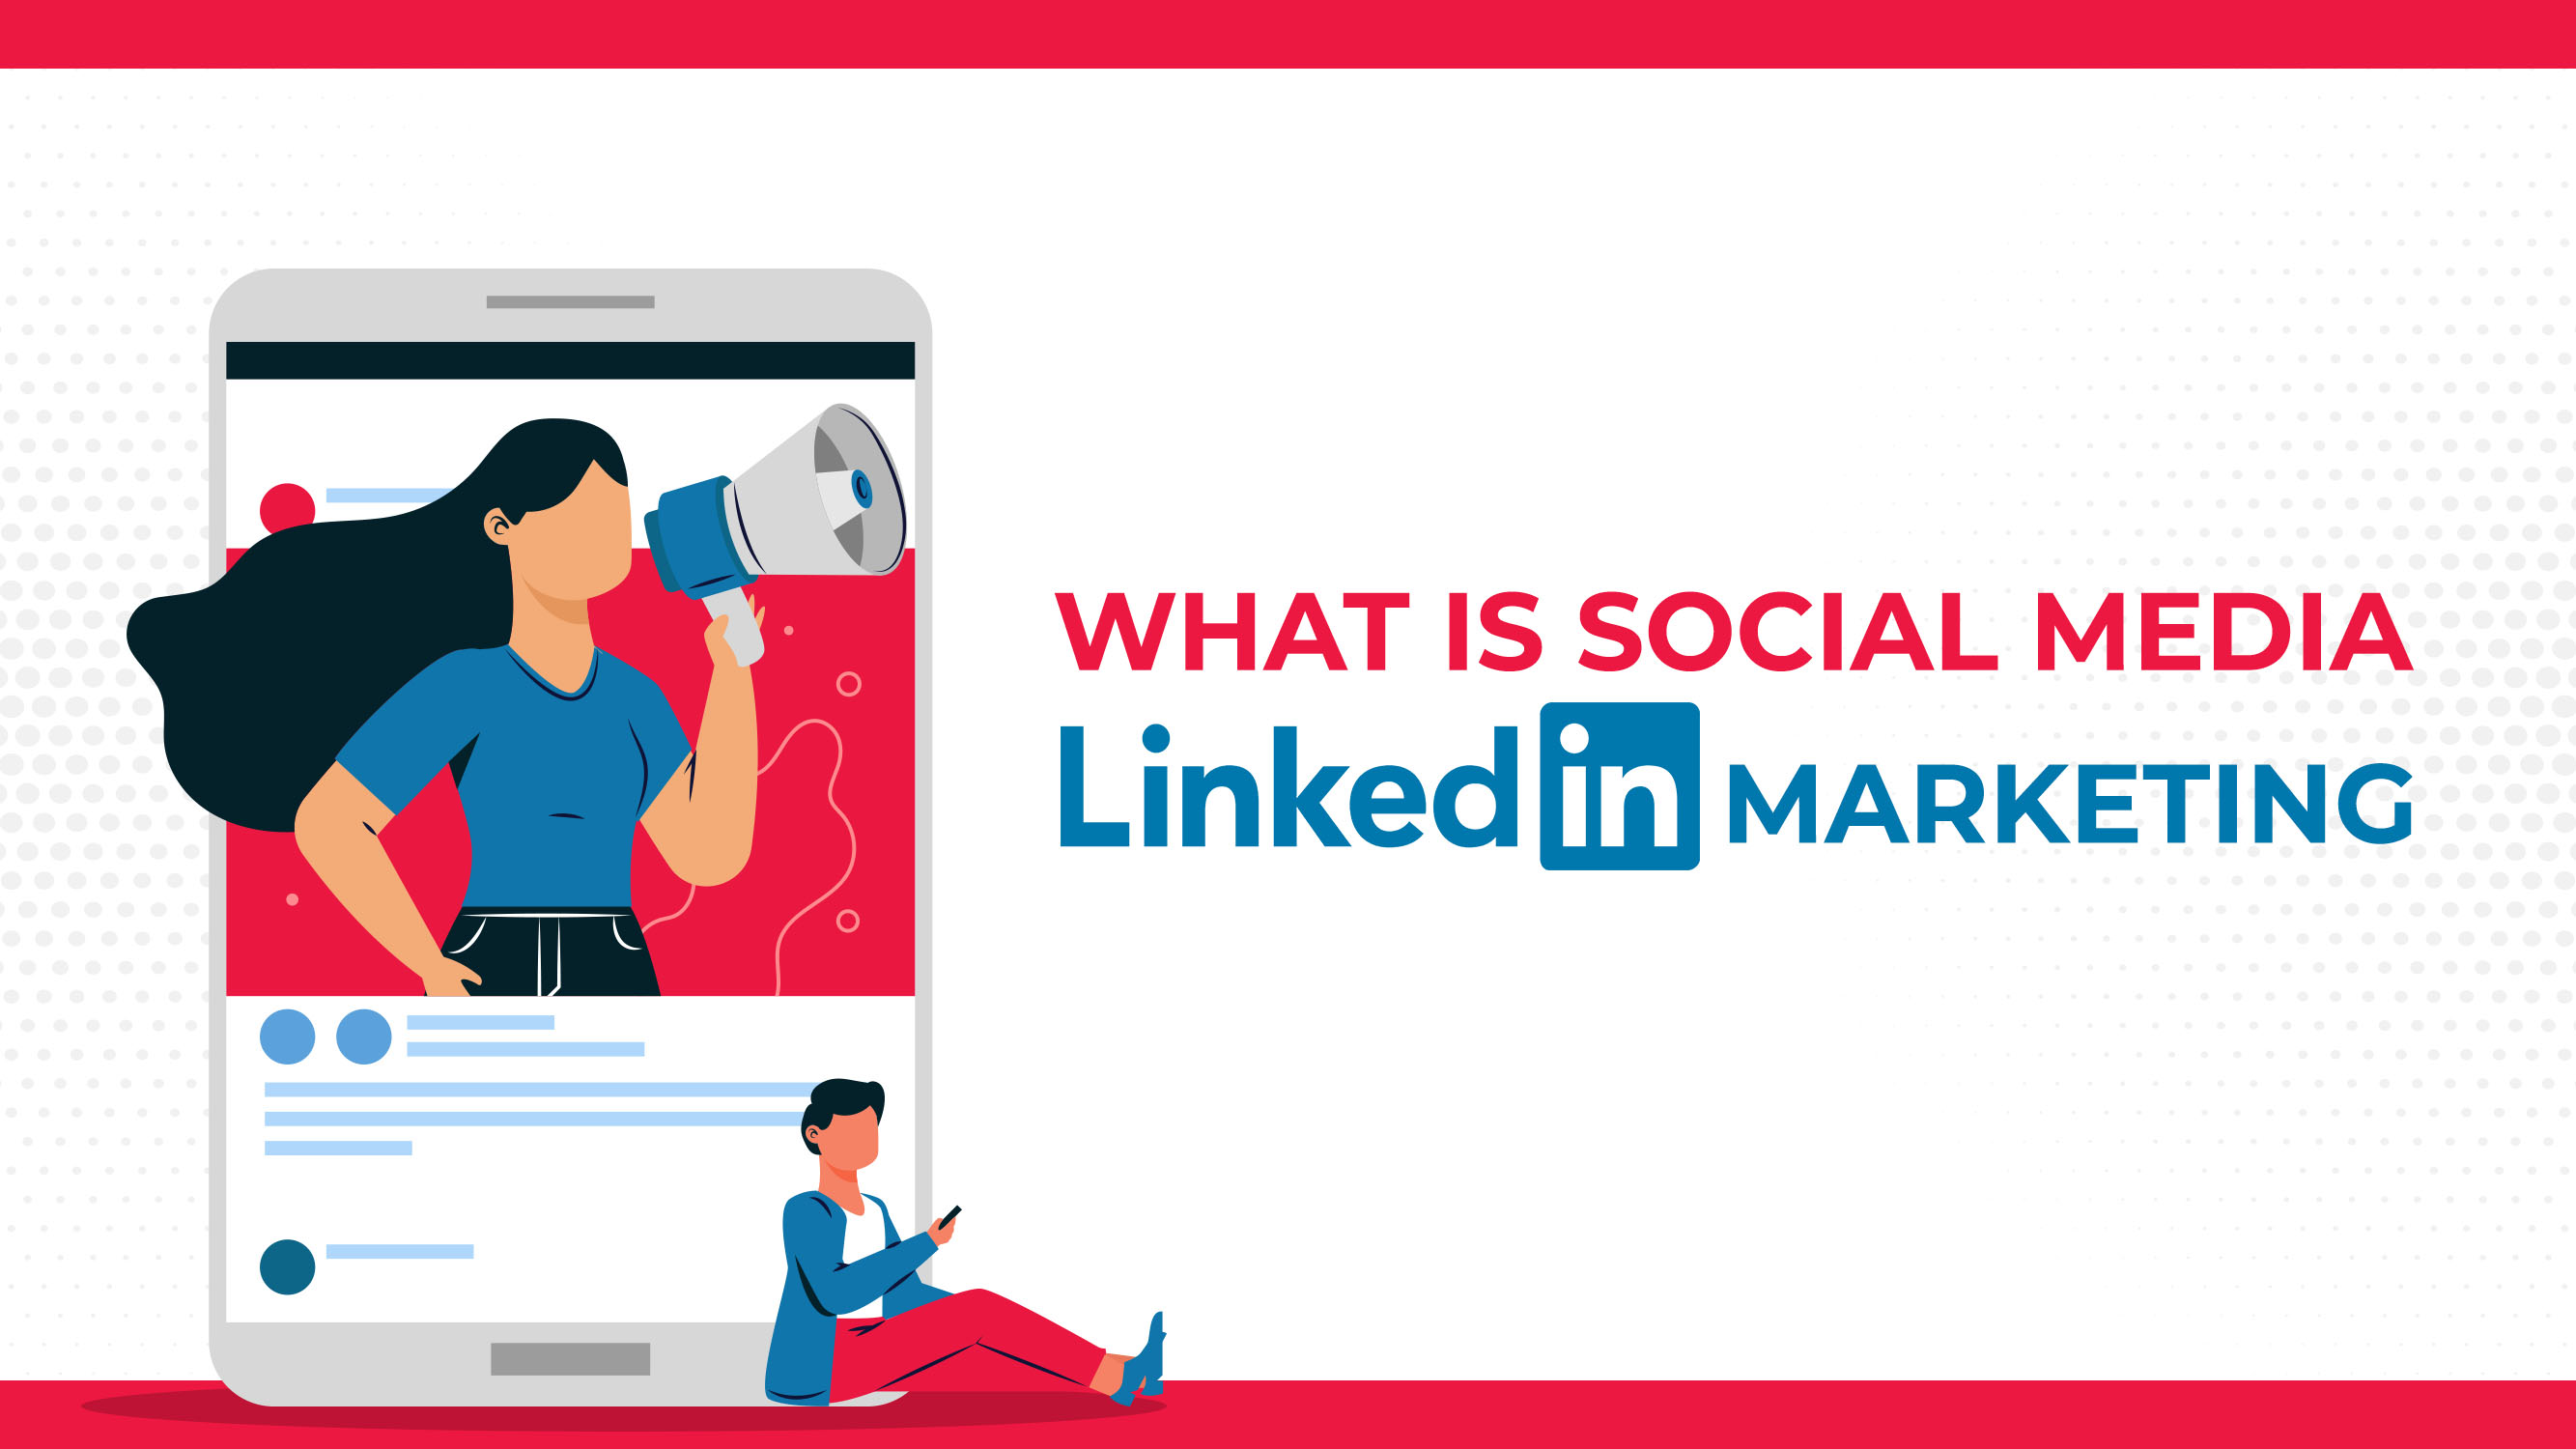 O que é Marketing LinkedIn de Mídia Social?